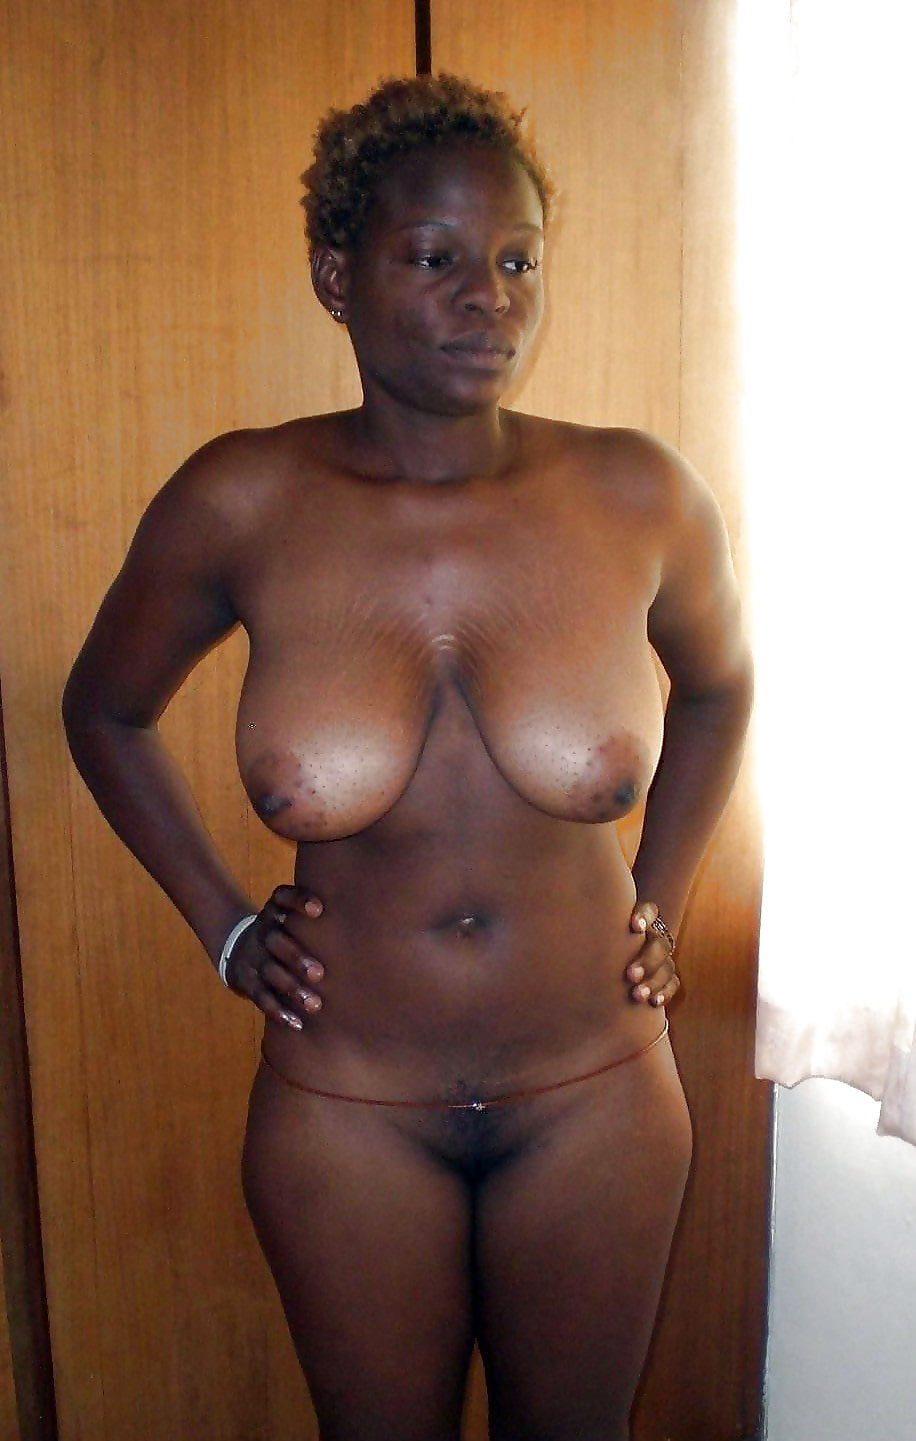 Amateur naked black women, homemade amateur sybian videos